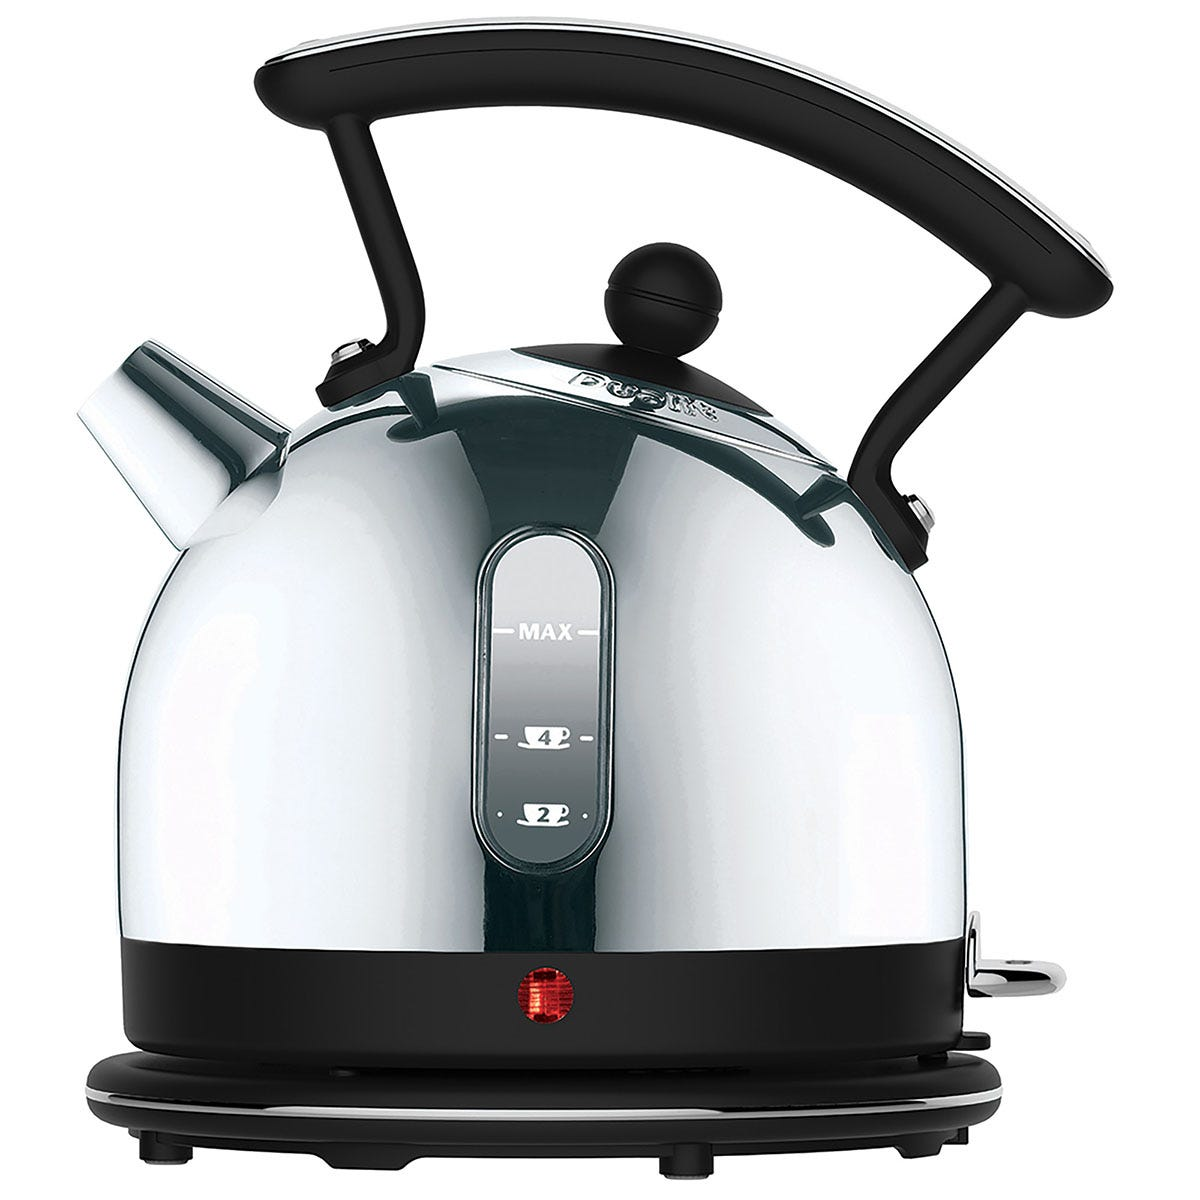 Dualit DA7262 Lite 1.7L Cordless Dome Kettle with Viewing Window - Black